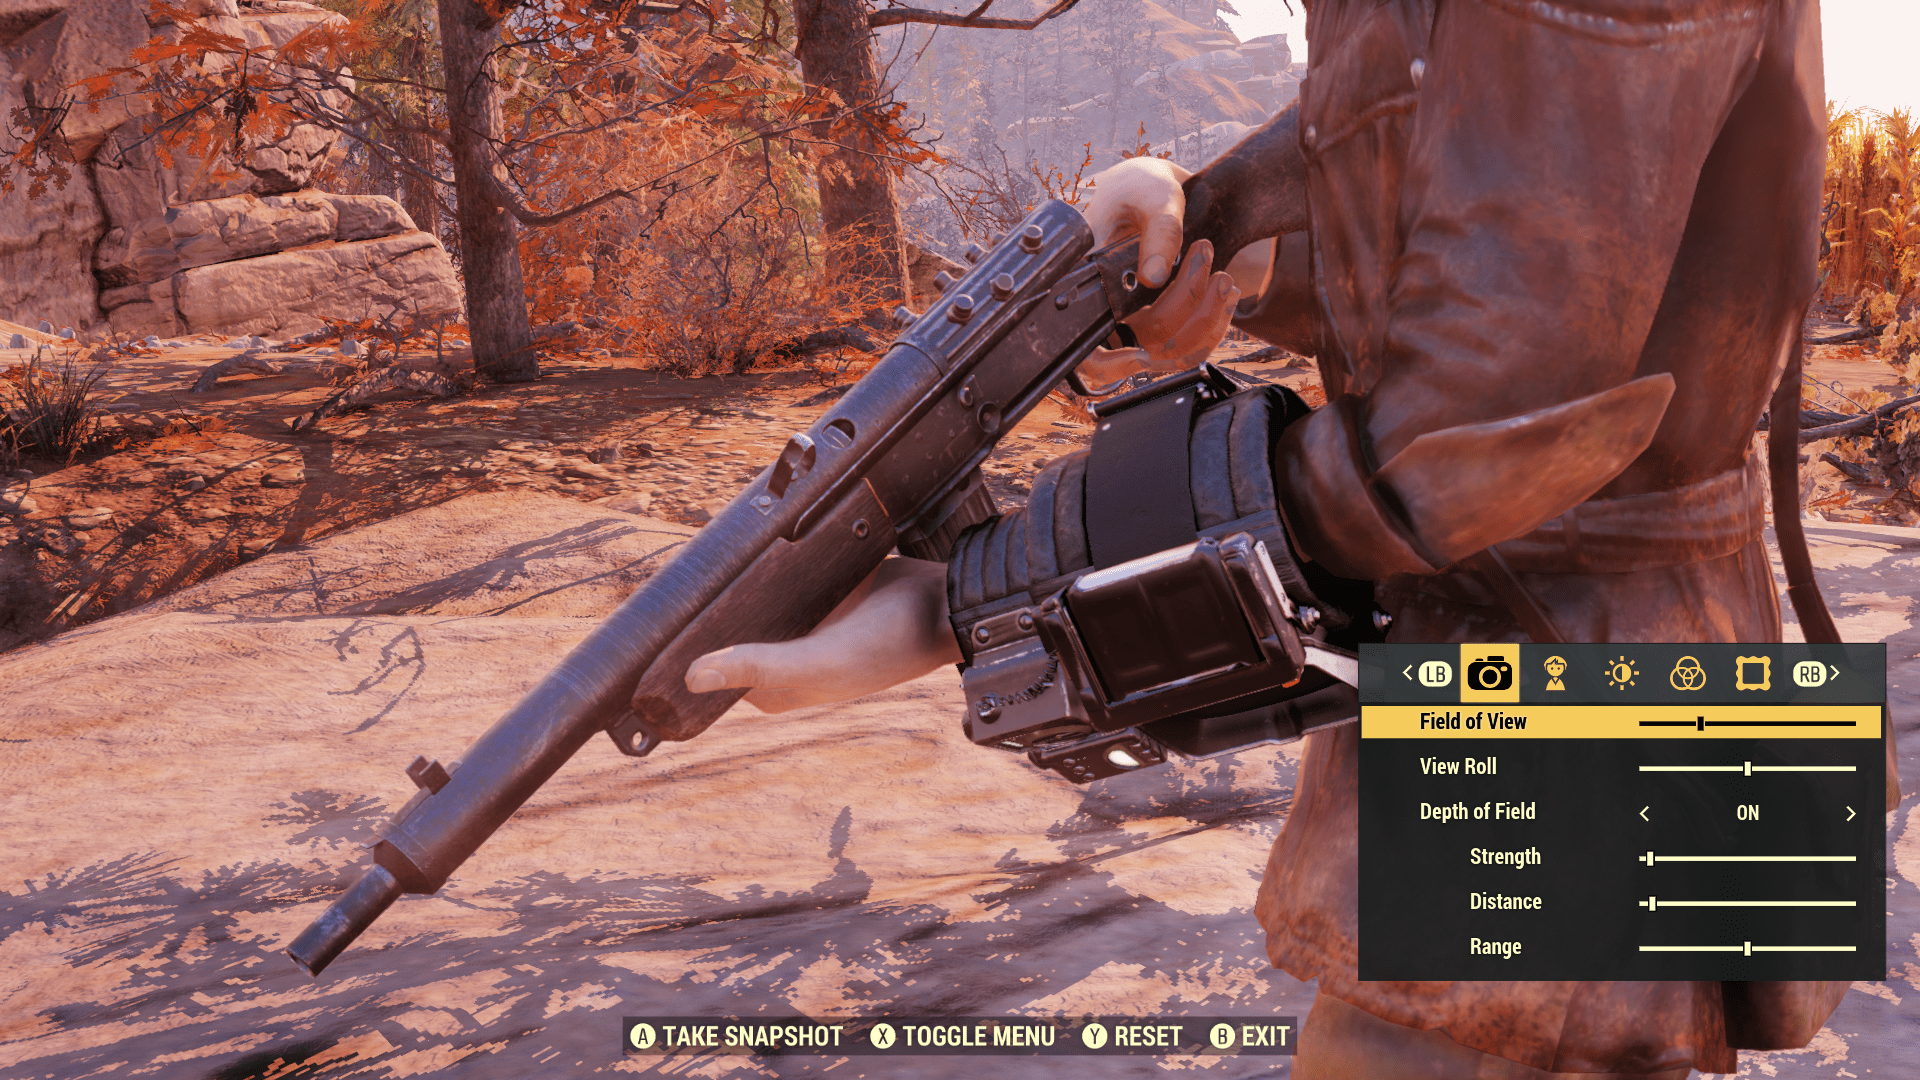 Clean Radium Rifle Mod - Fallout 76 Mod download